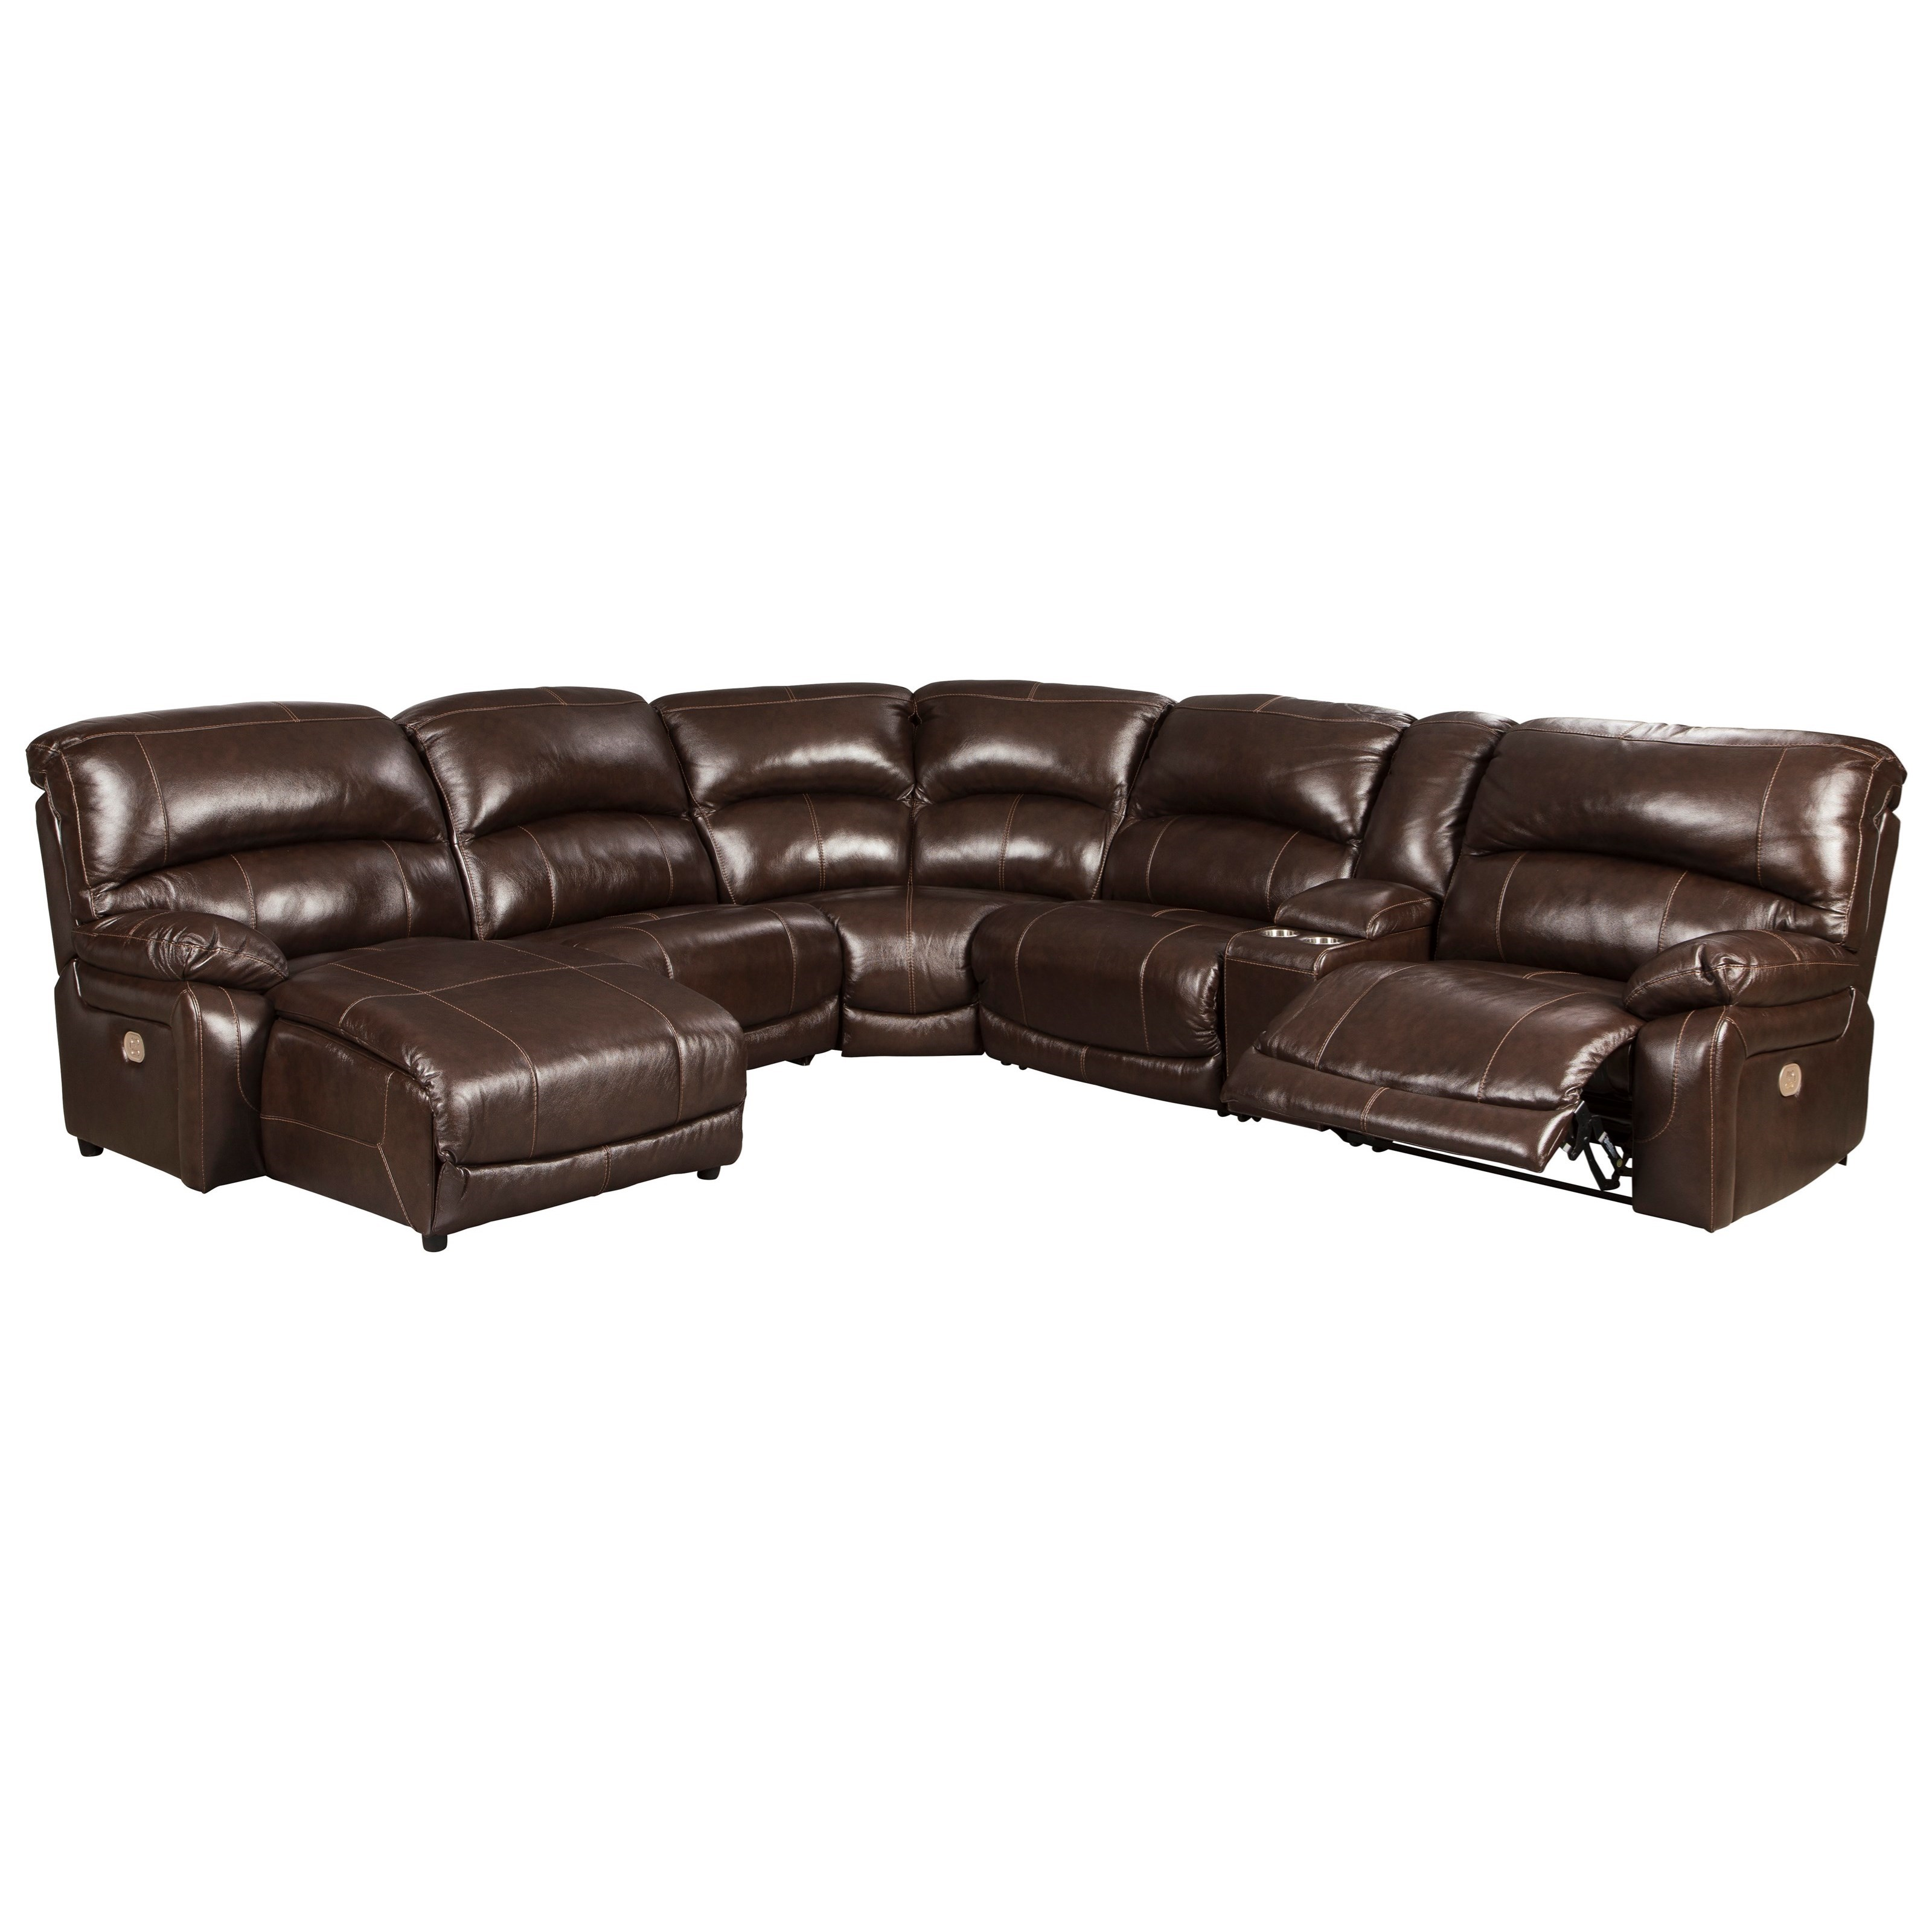 6-Piece Reclining Sectional with Chaise